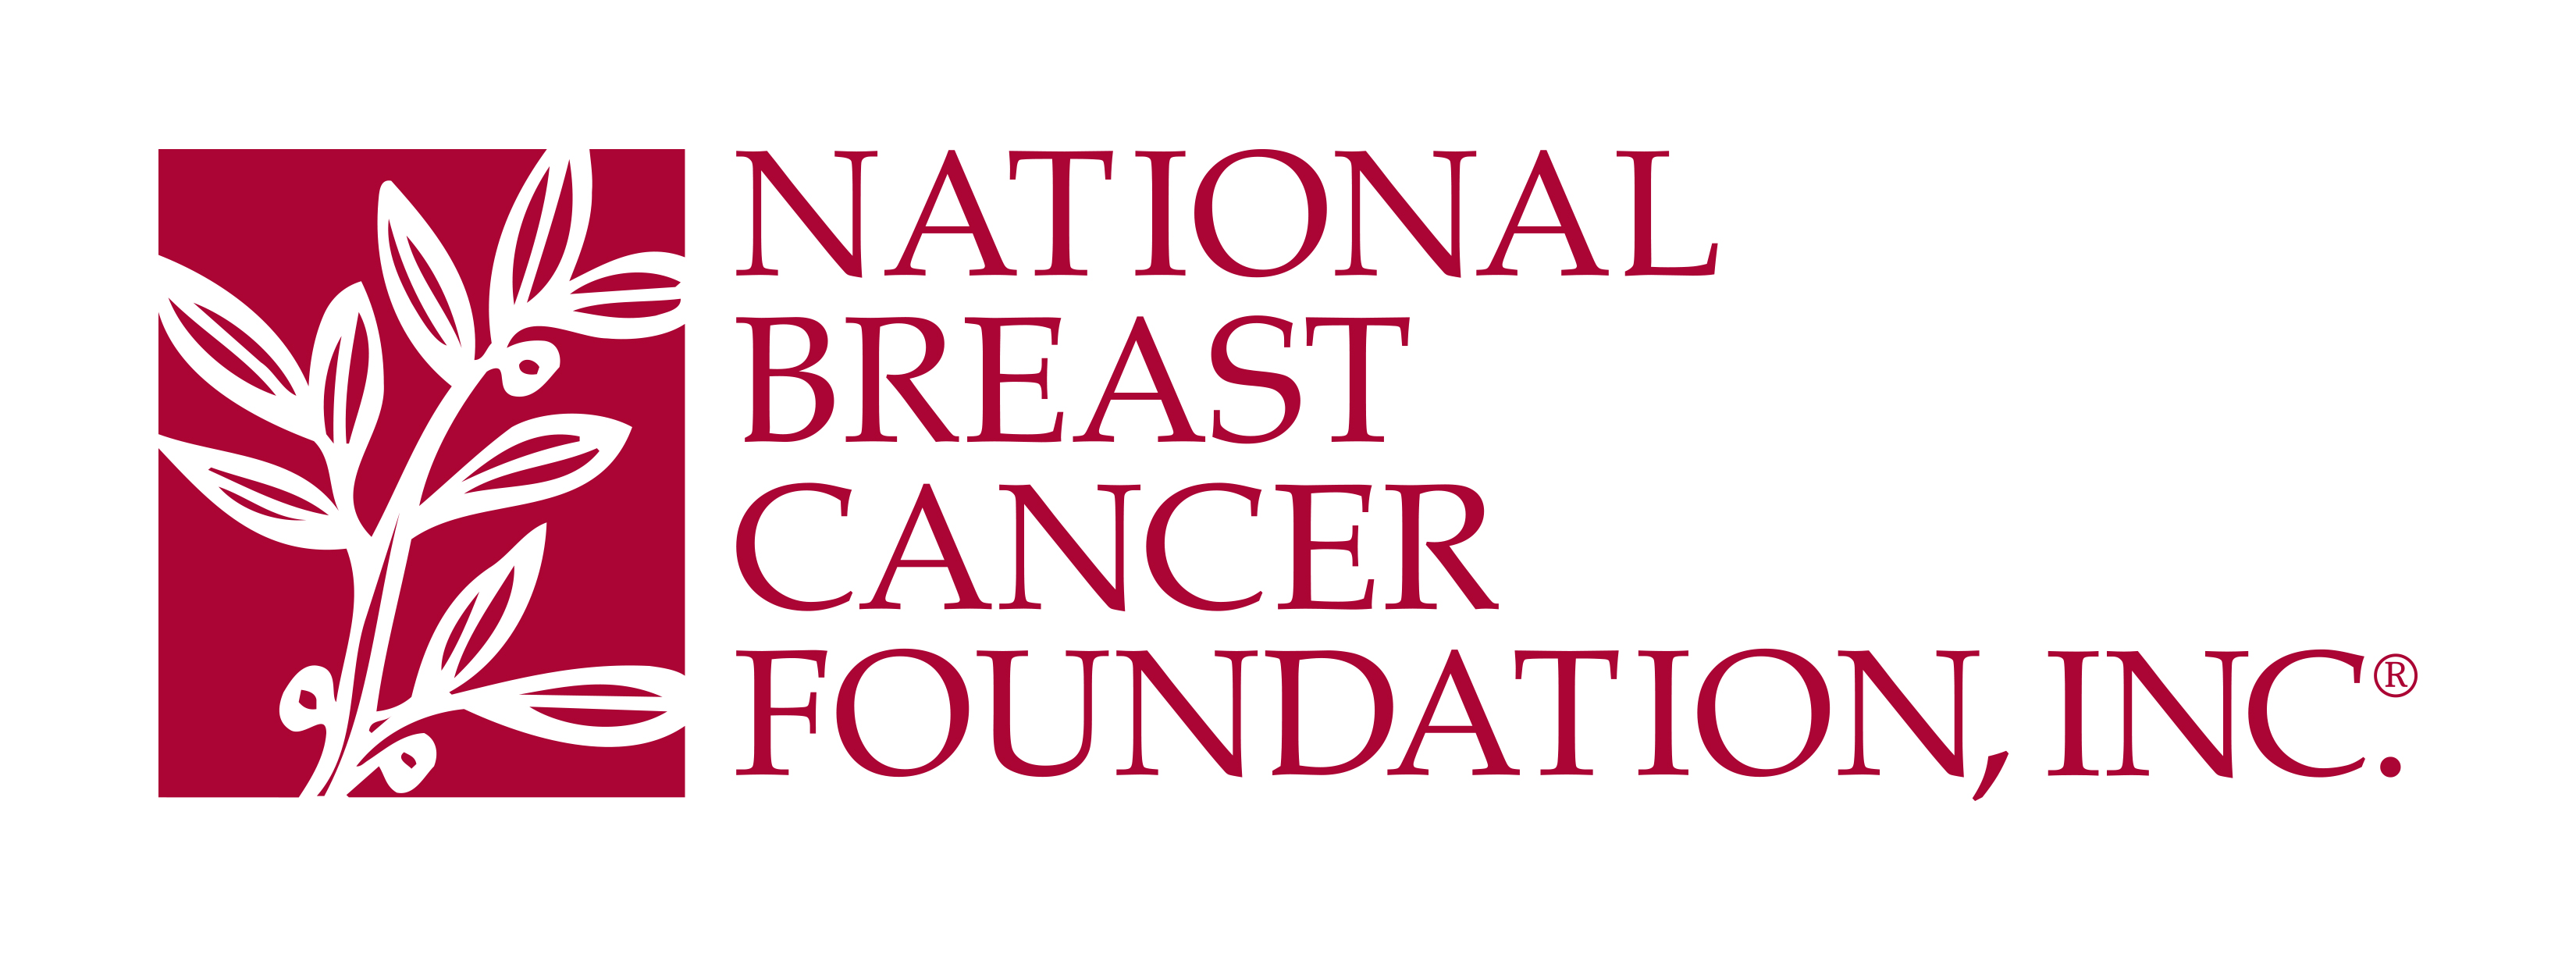 CEG and National Breast Cancer Foundation